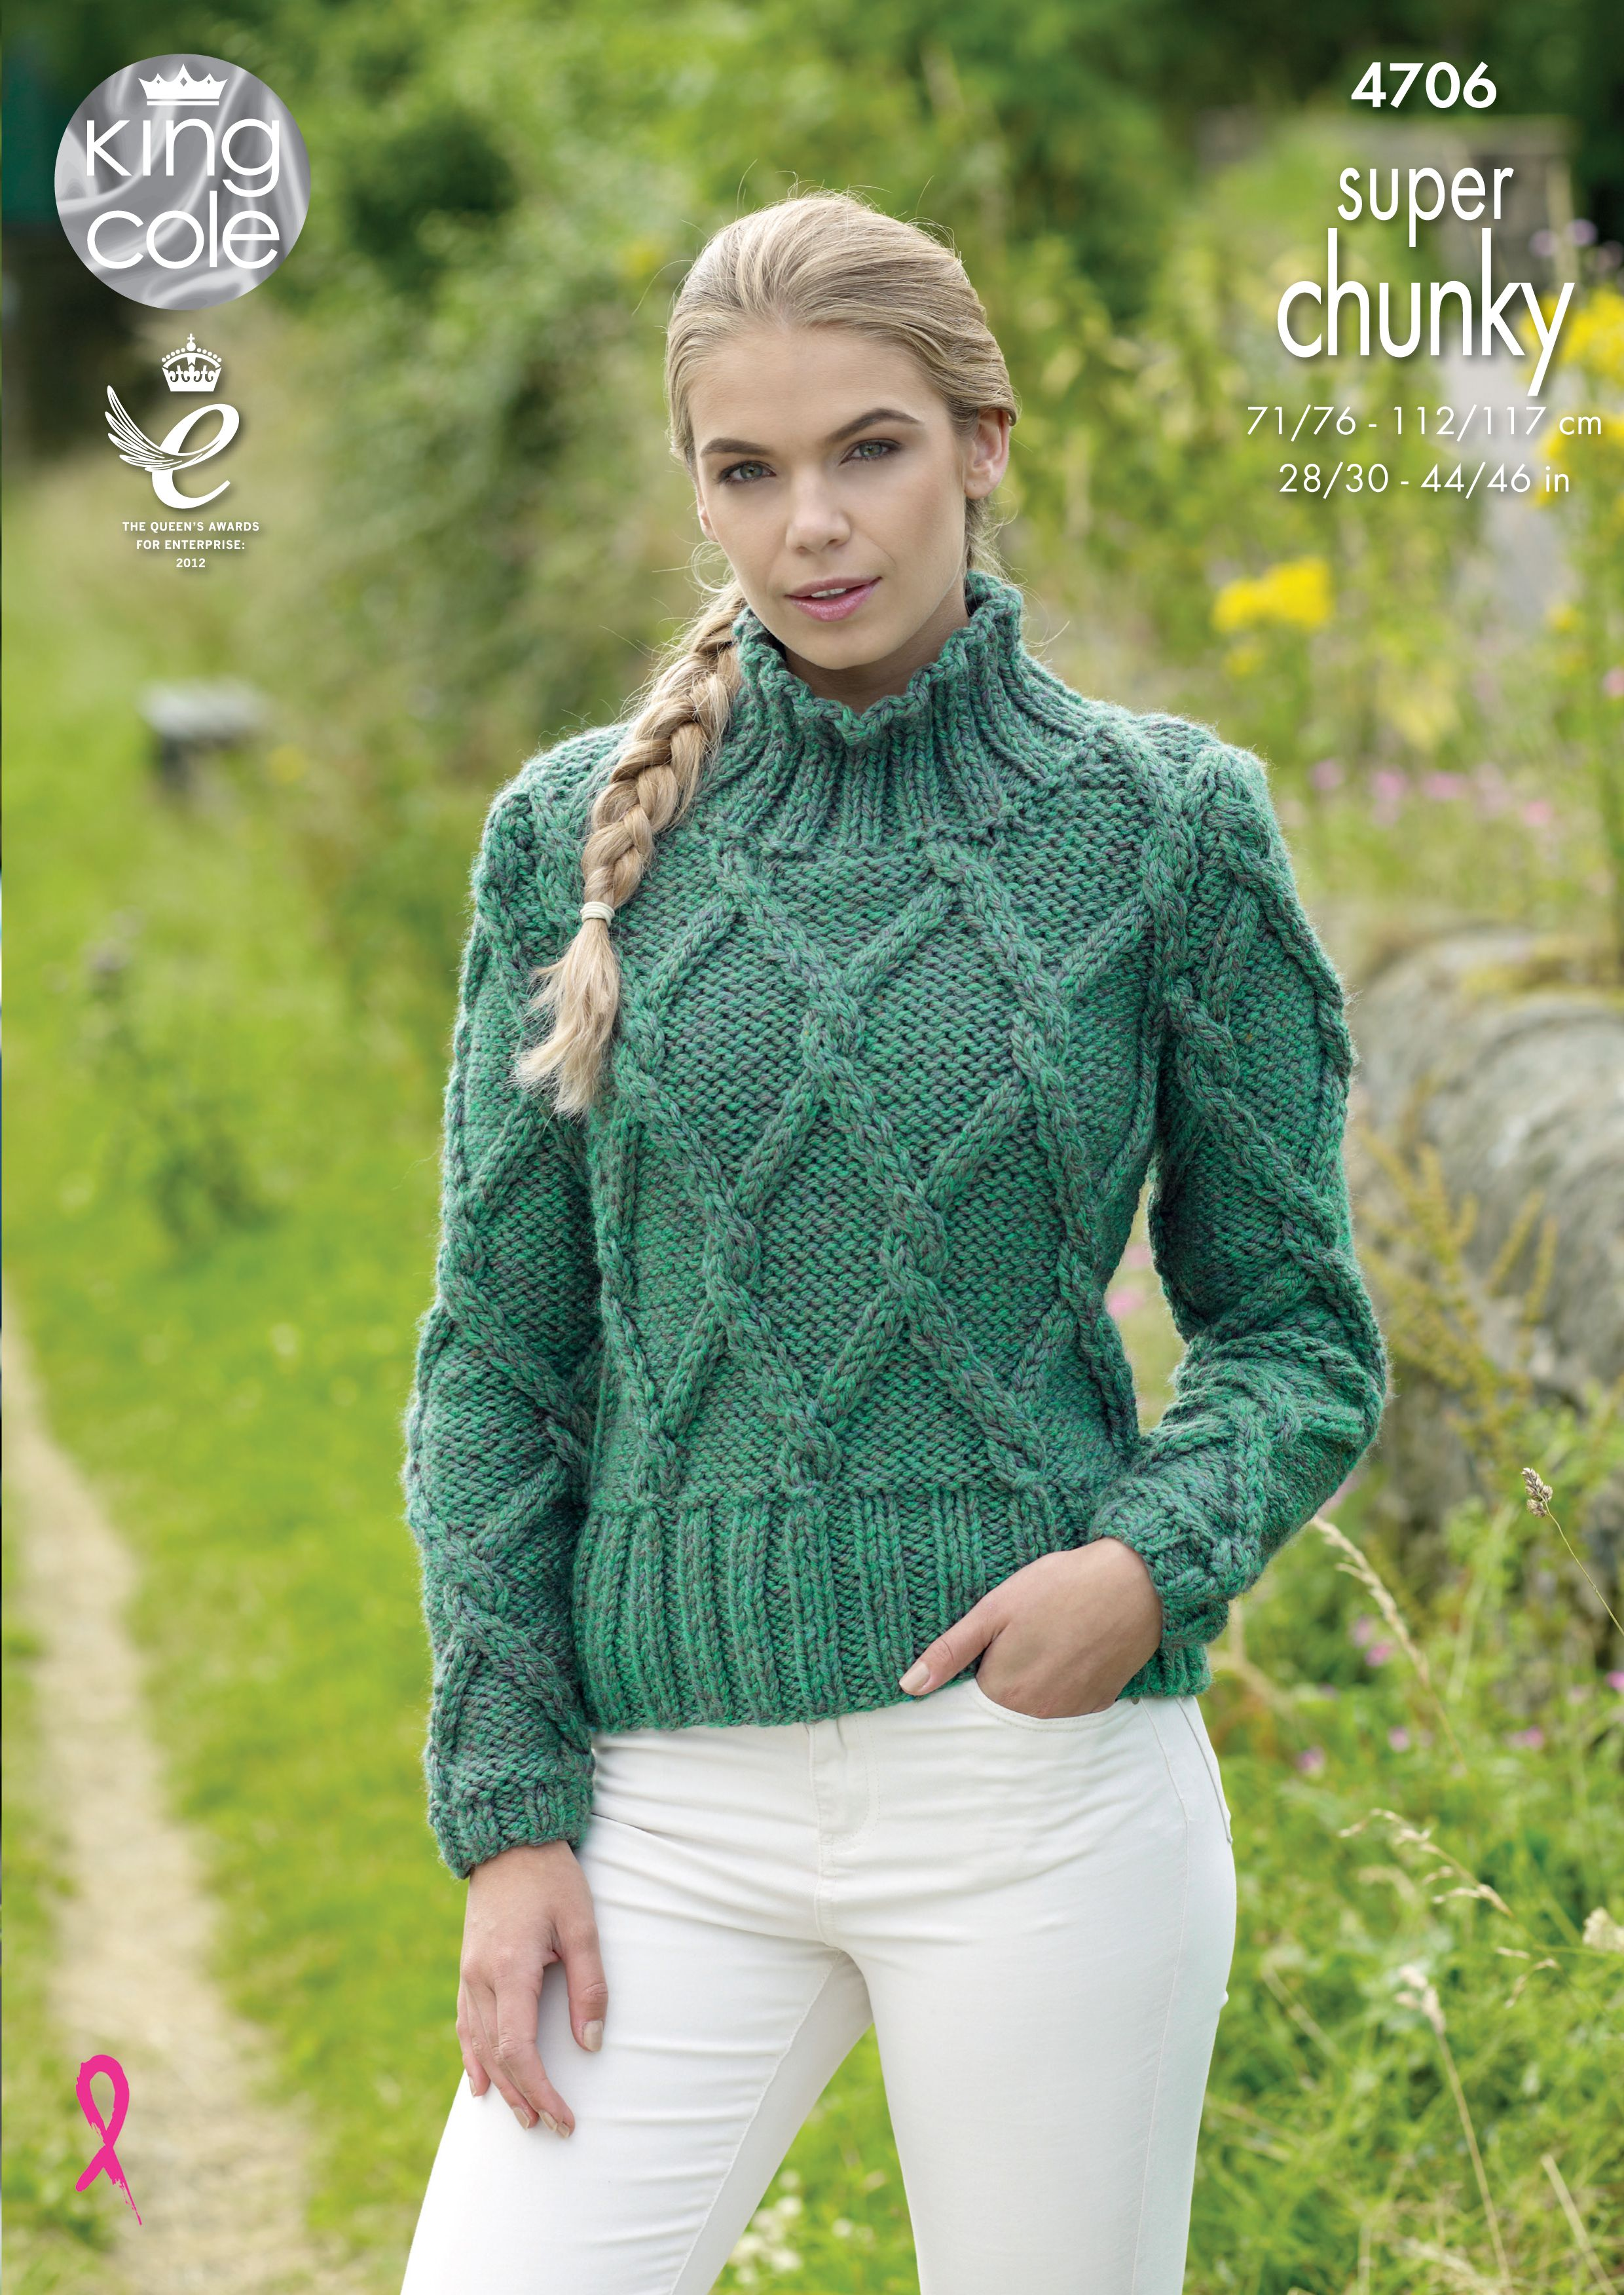 Sweater & Pullover Knitted with Big Value Super Chunky - King Cole ...